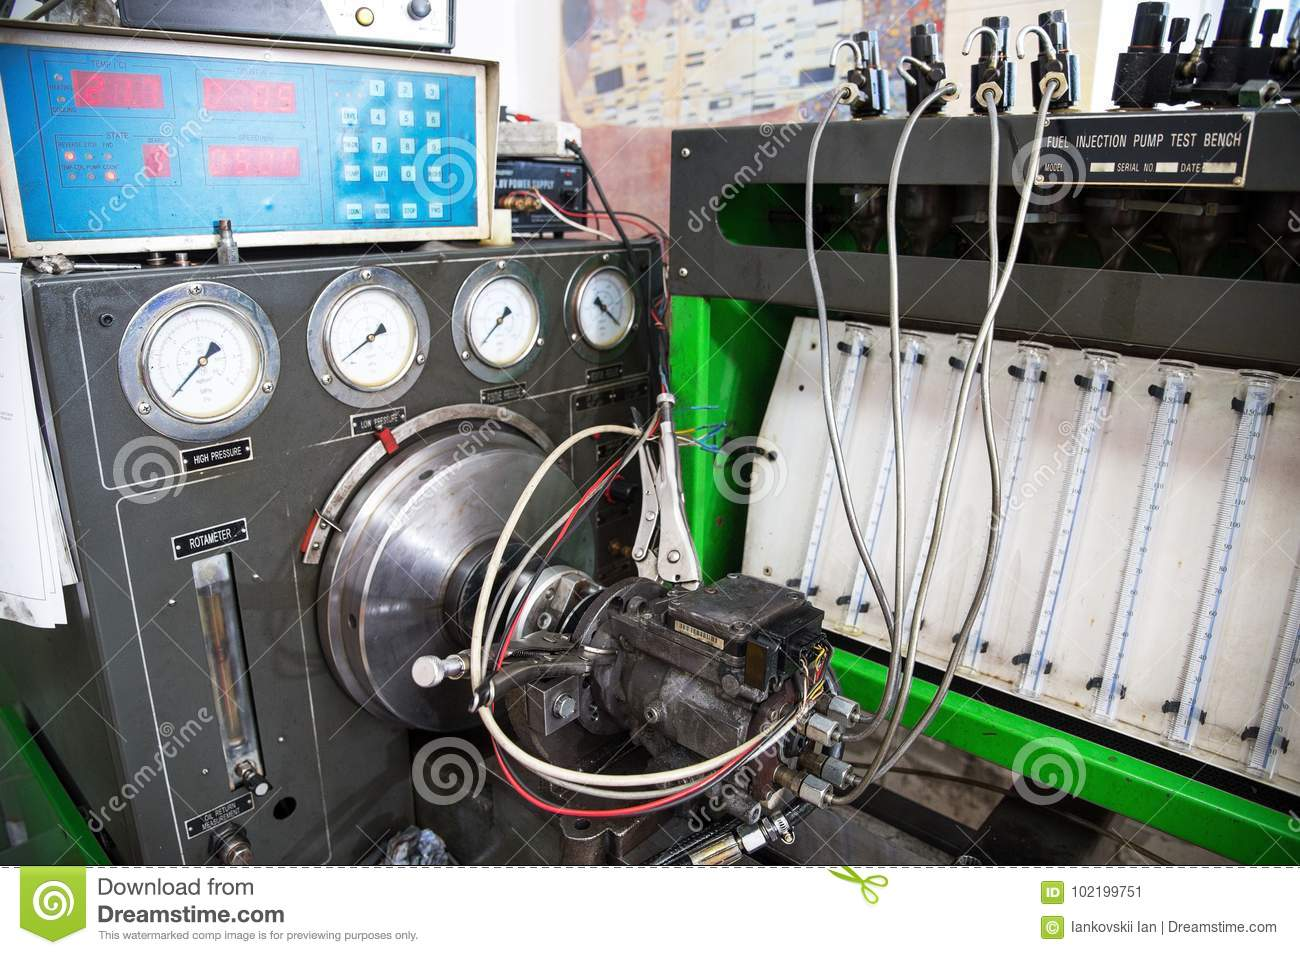 Close Up High Pressure Diesel Fuel Pump Test Bench Stock Image Download Of